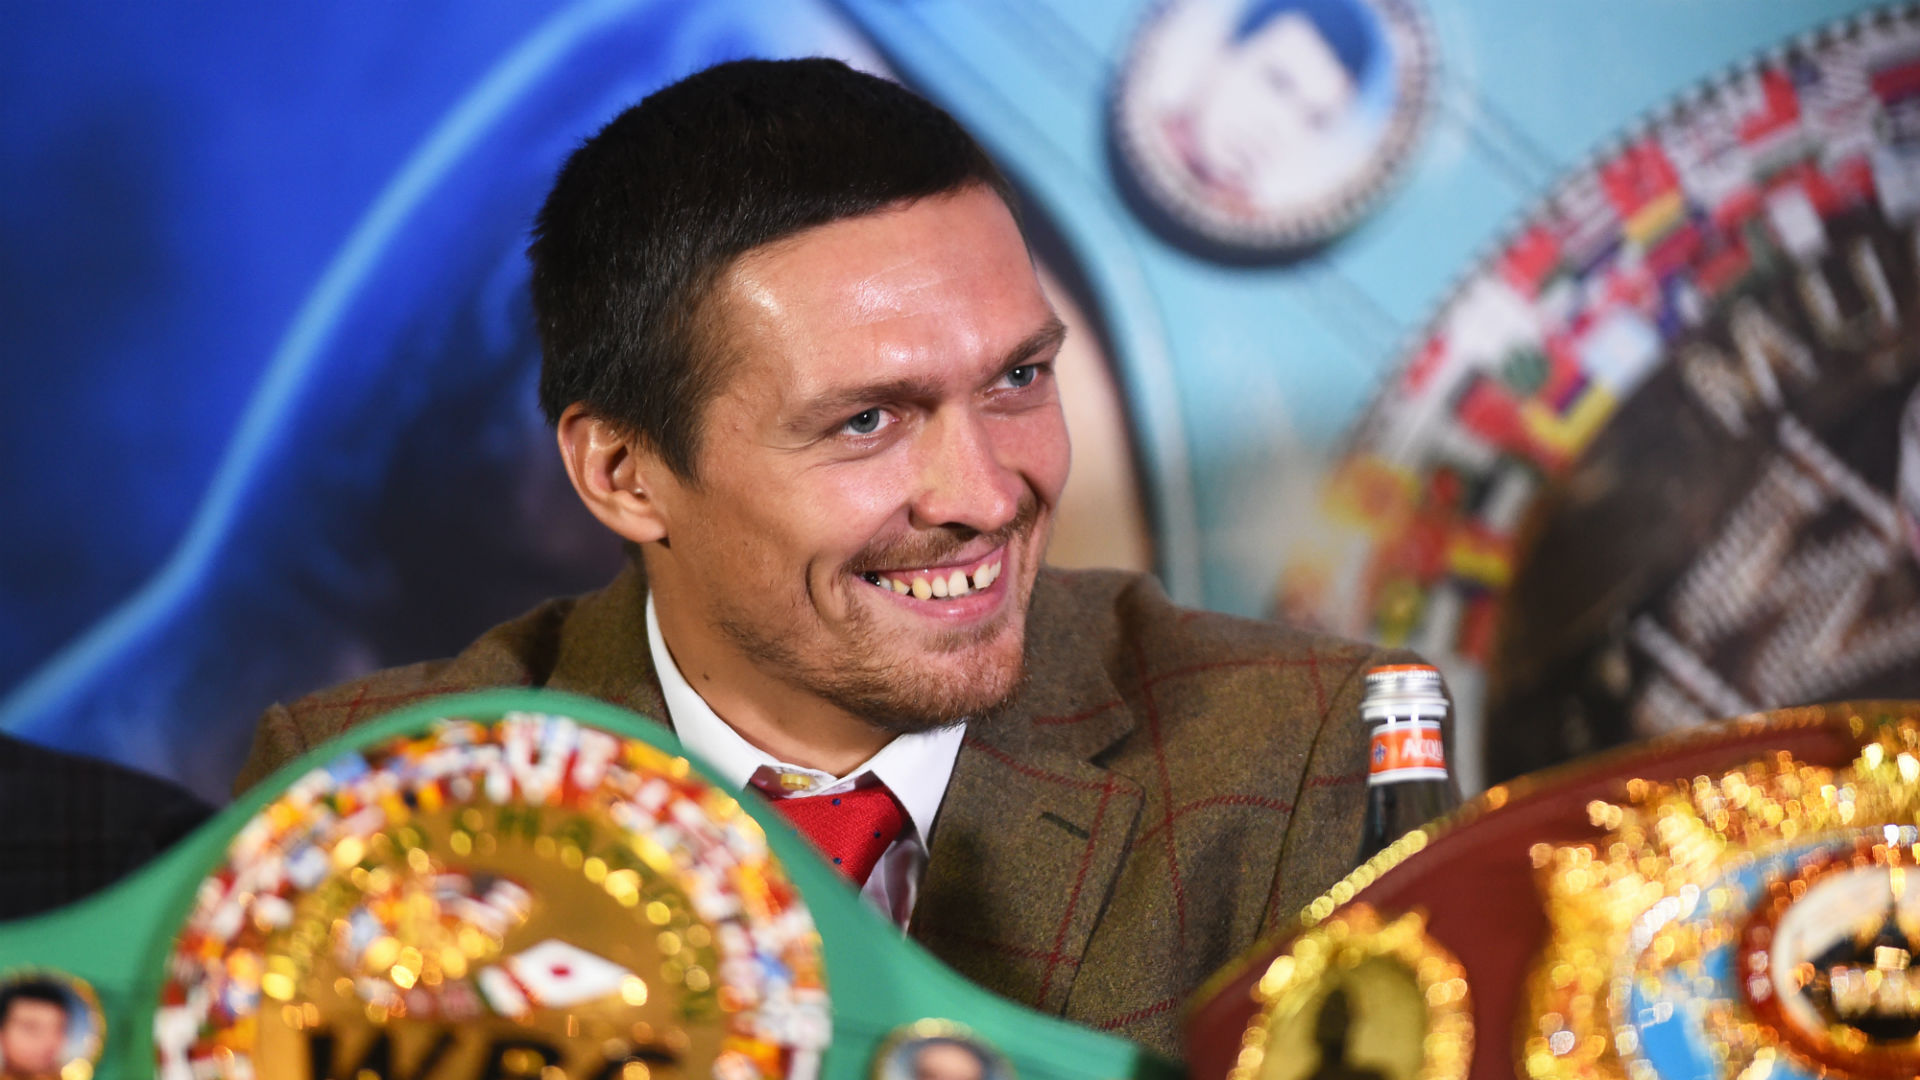 Who is Tony Bellew's opponent Oleksandr Usyk?